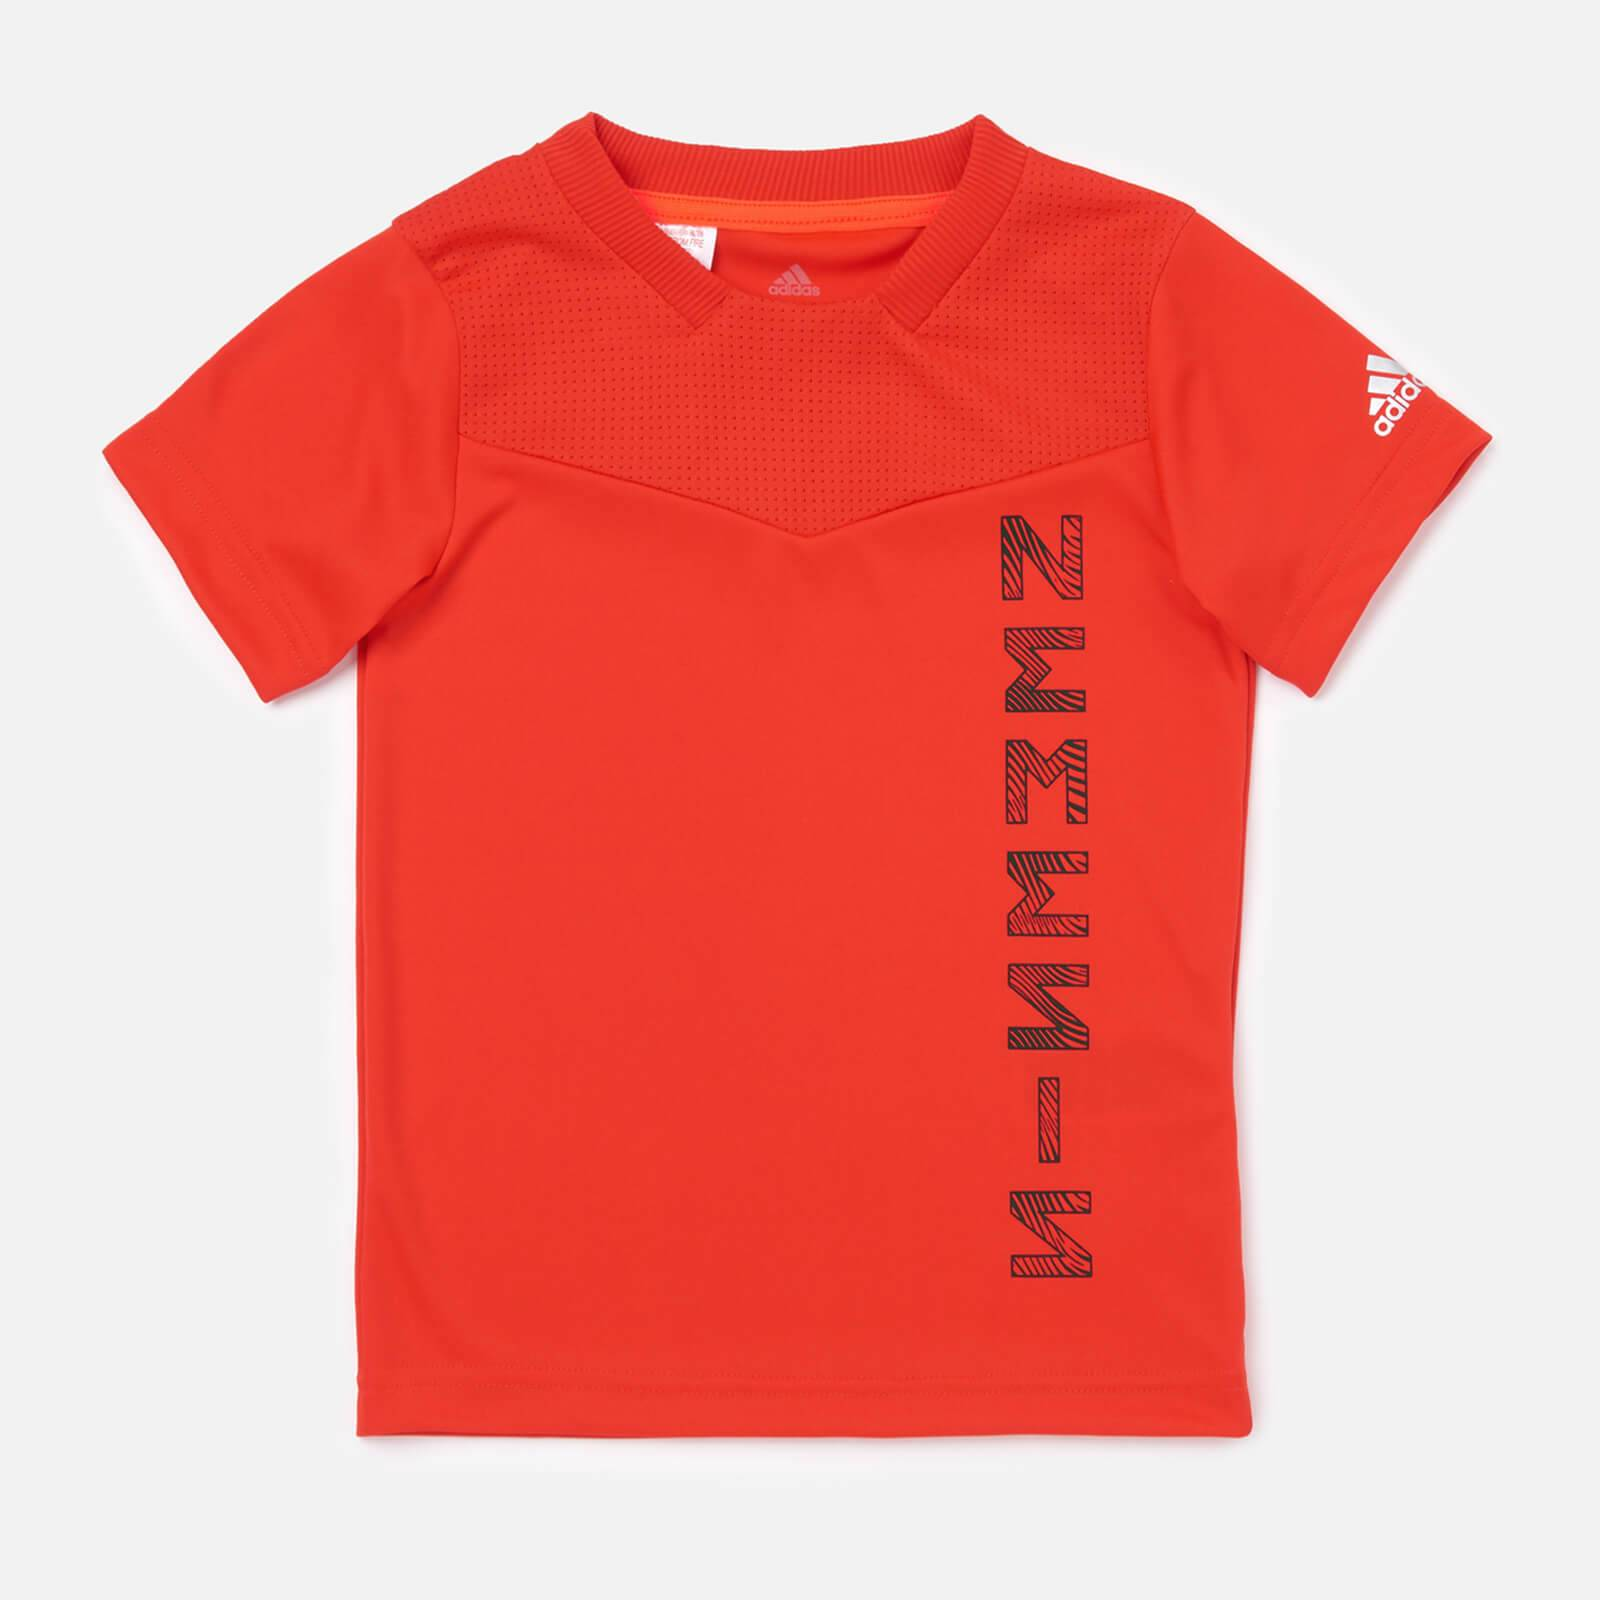 adidas Boys' Young Boys Nemis Jersey - Red - 11-12 Years